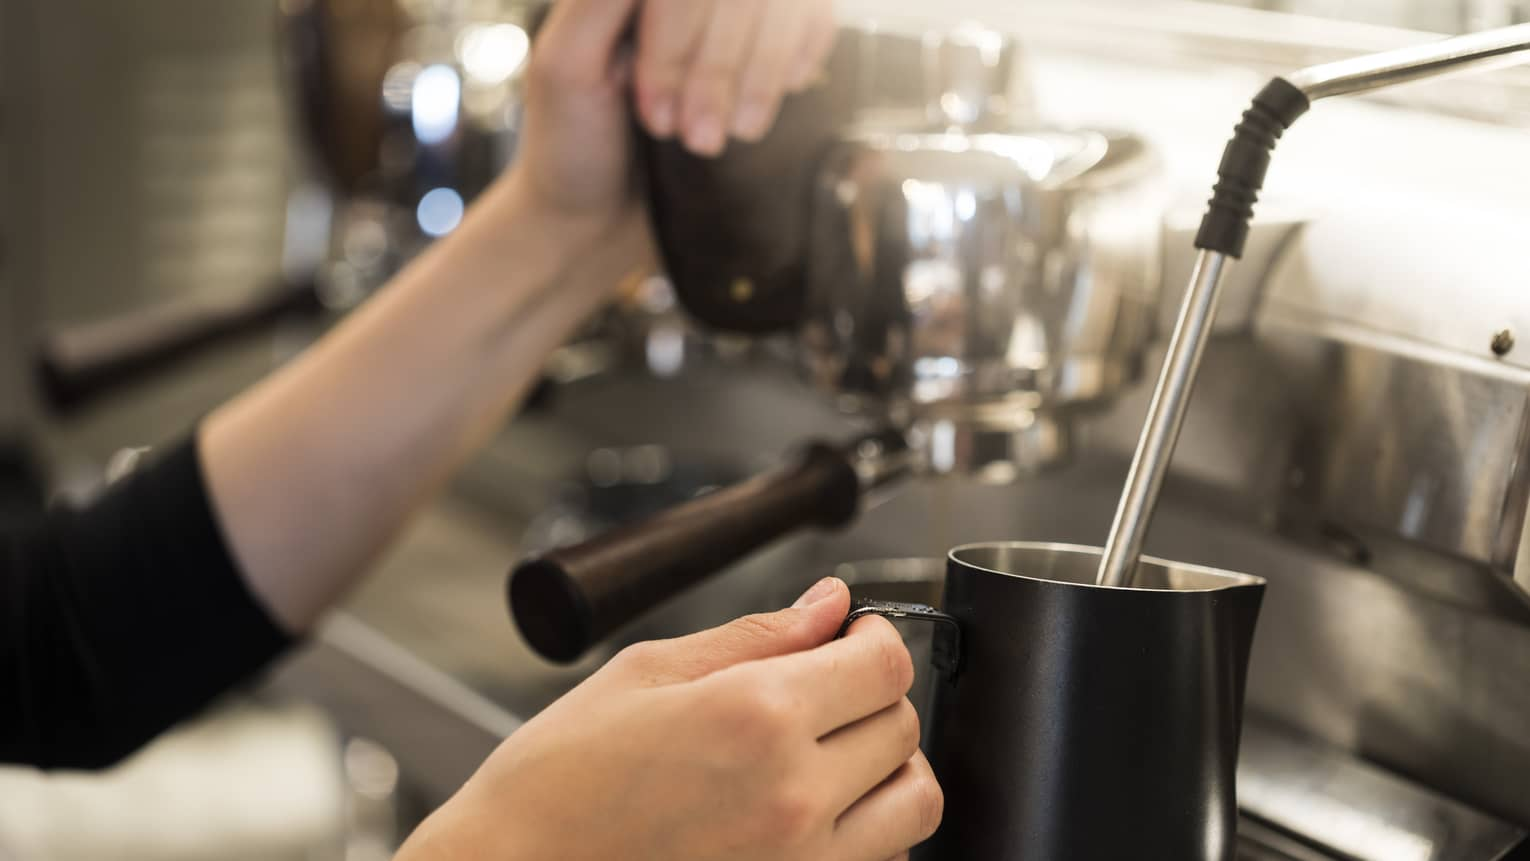 Close-up of hands with milk steamer at espresso machine